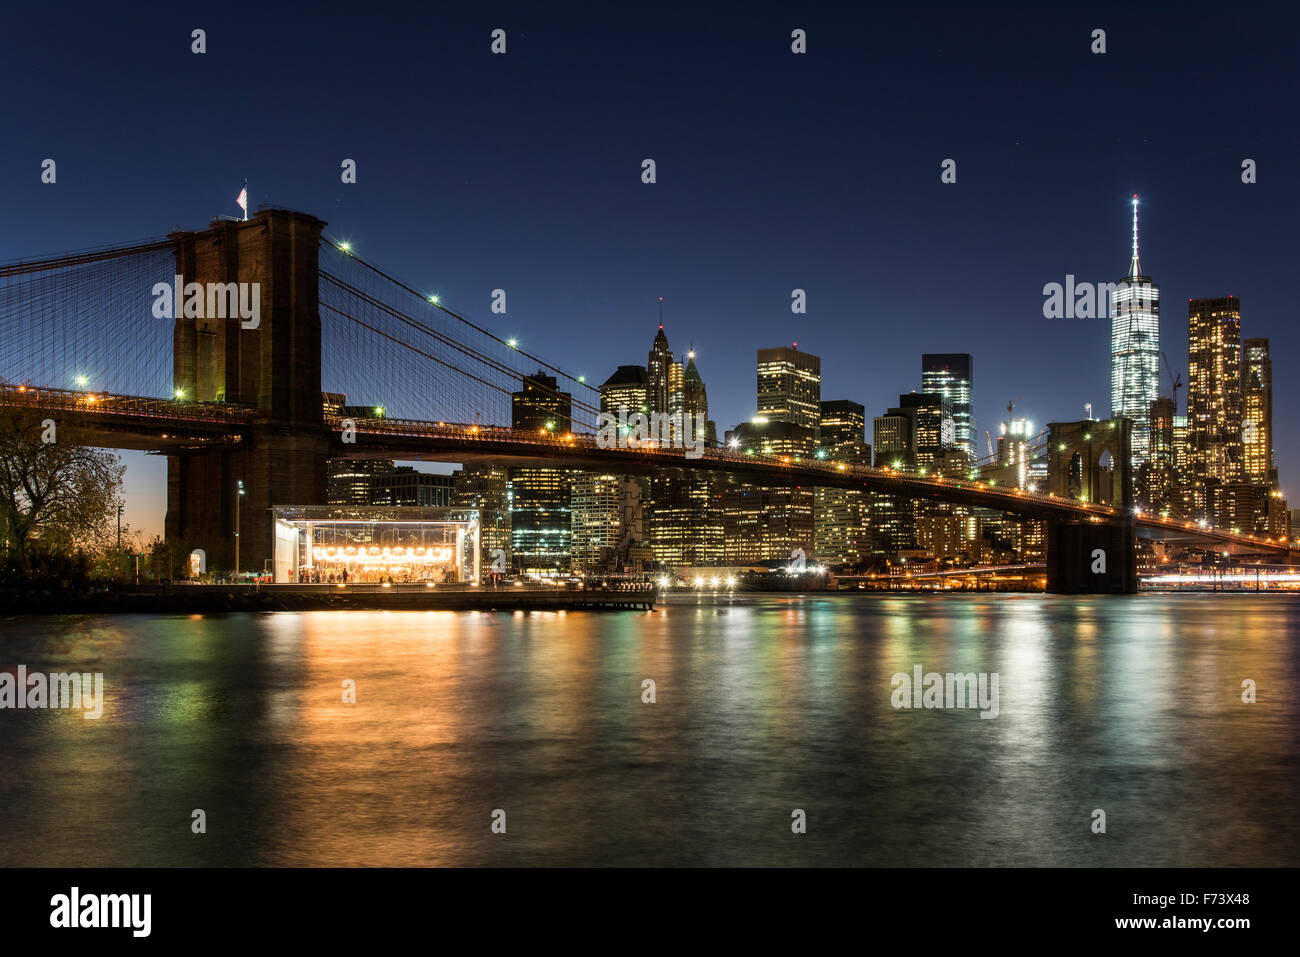 Vue de nuit sur le pont de Brooklyn avec des toits de Manhattan, Brooklyn, New York, USA Photo Stock